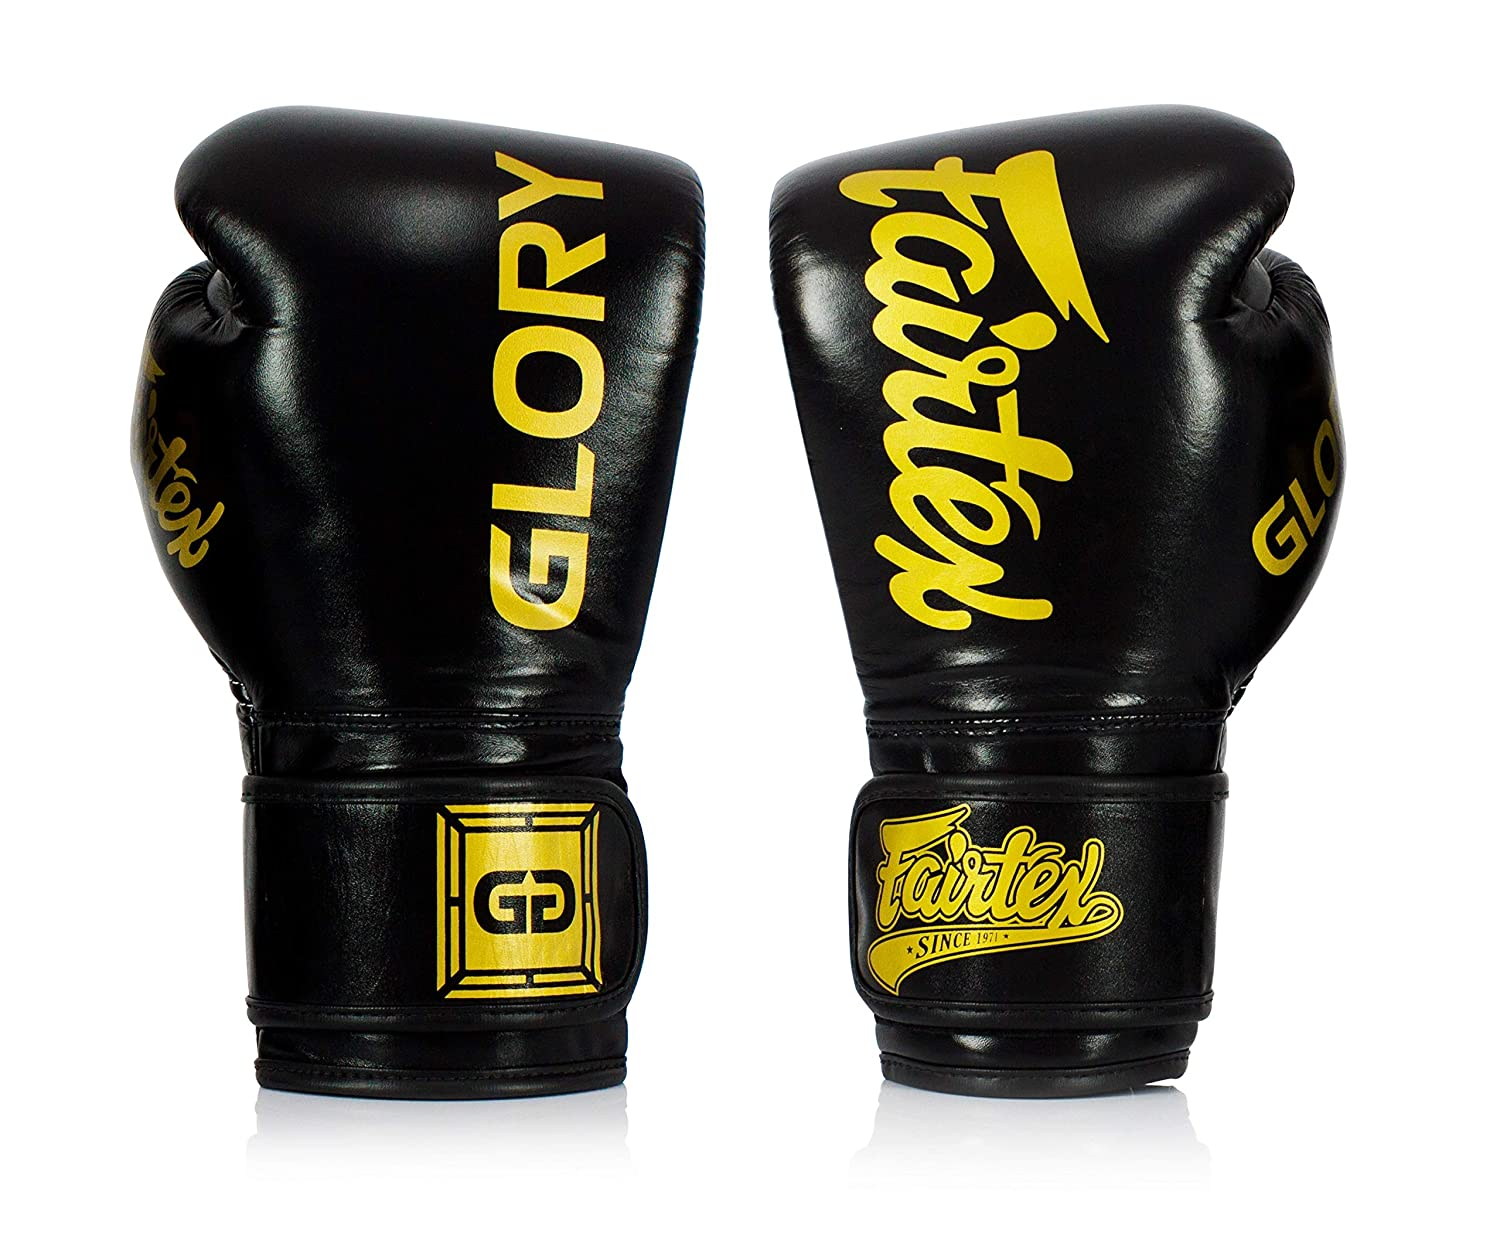 Fairtex Glory Kickboxing Gloves - Limited Edition